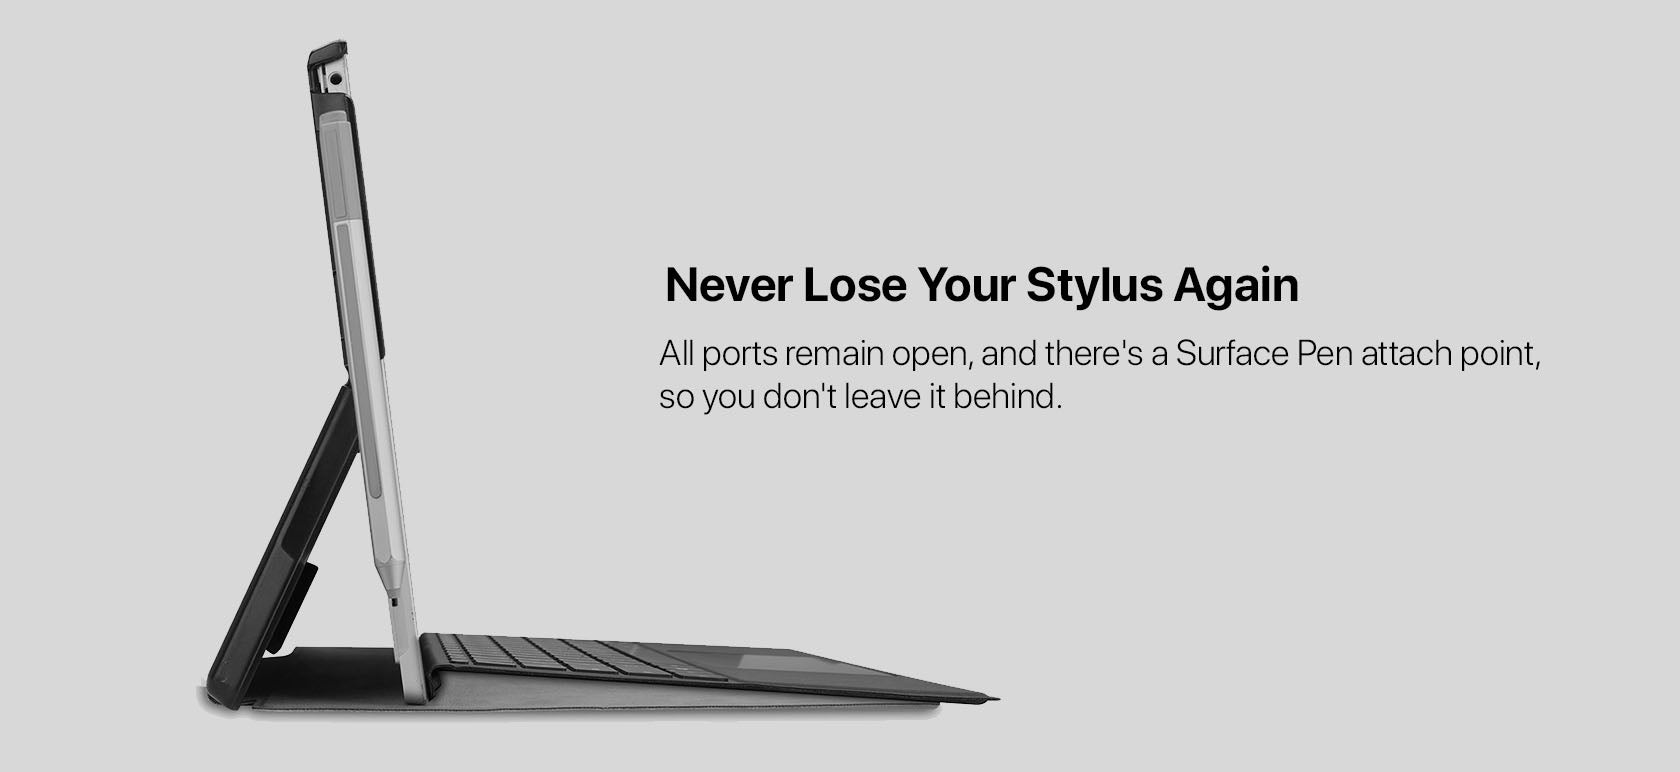 Never Lose Your Stylus Again - All ports remain open, and there's a Surface Pen attach point, so you don't leave it behind.